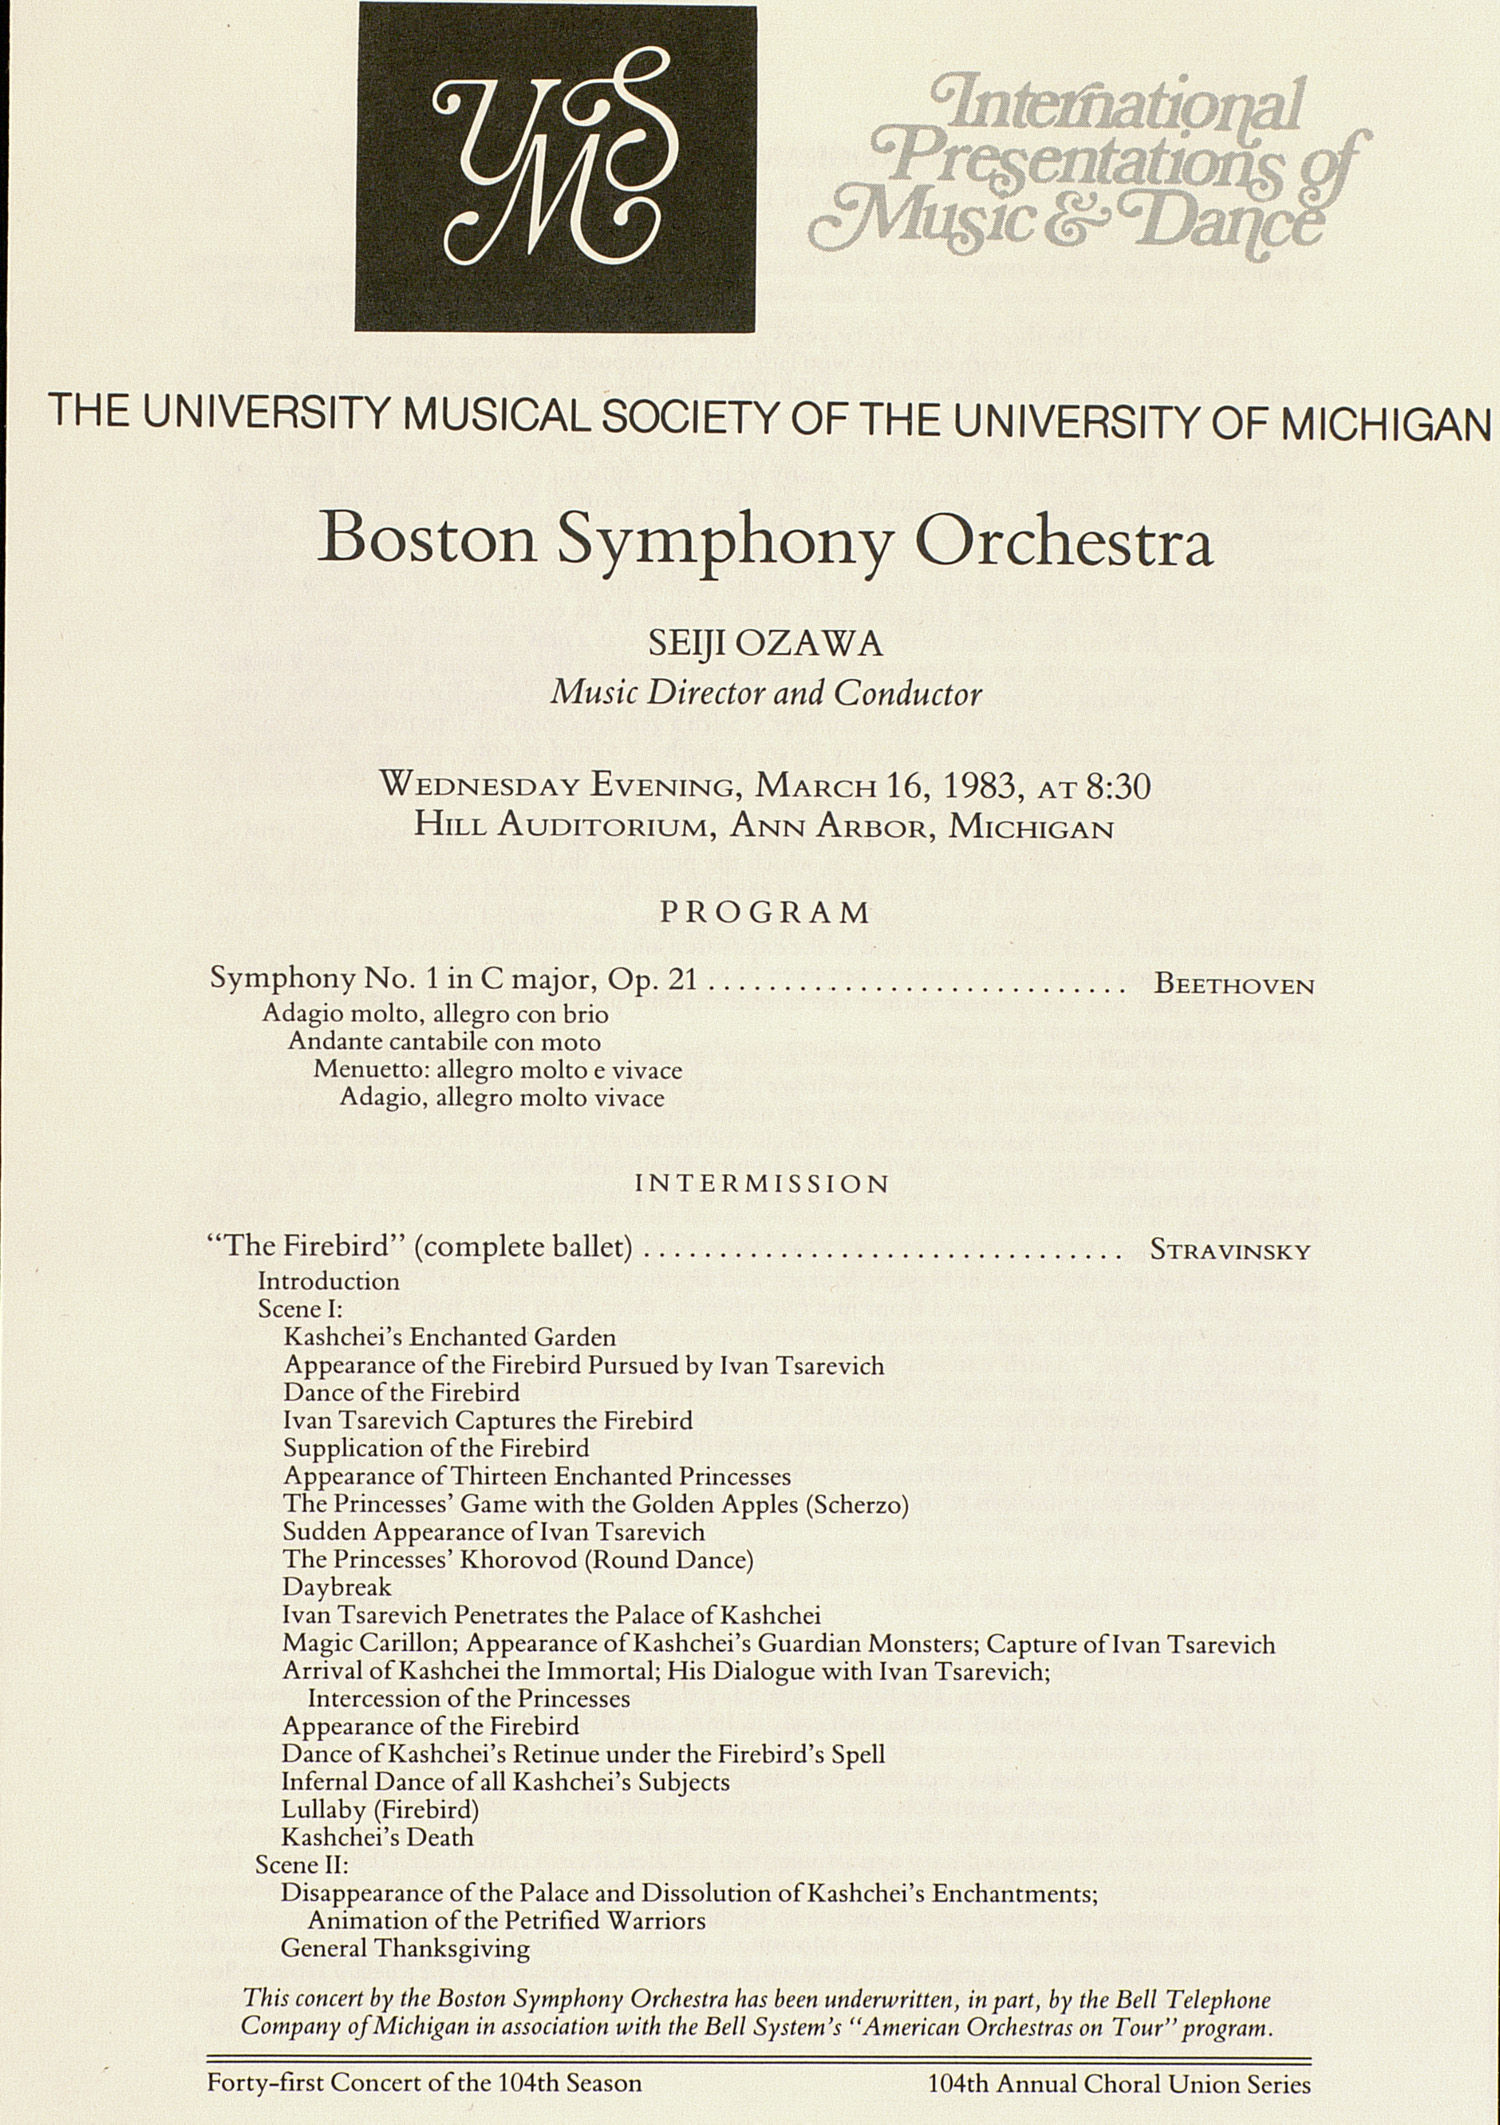 UMS Concert Program, March 16, 1983: International Presentations Of Music & Dance -- Boston Symphony Orchestra image